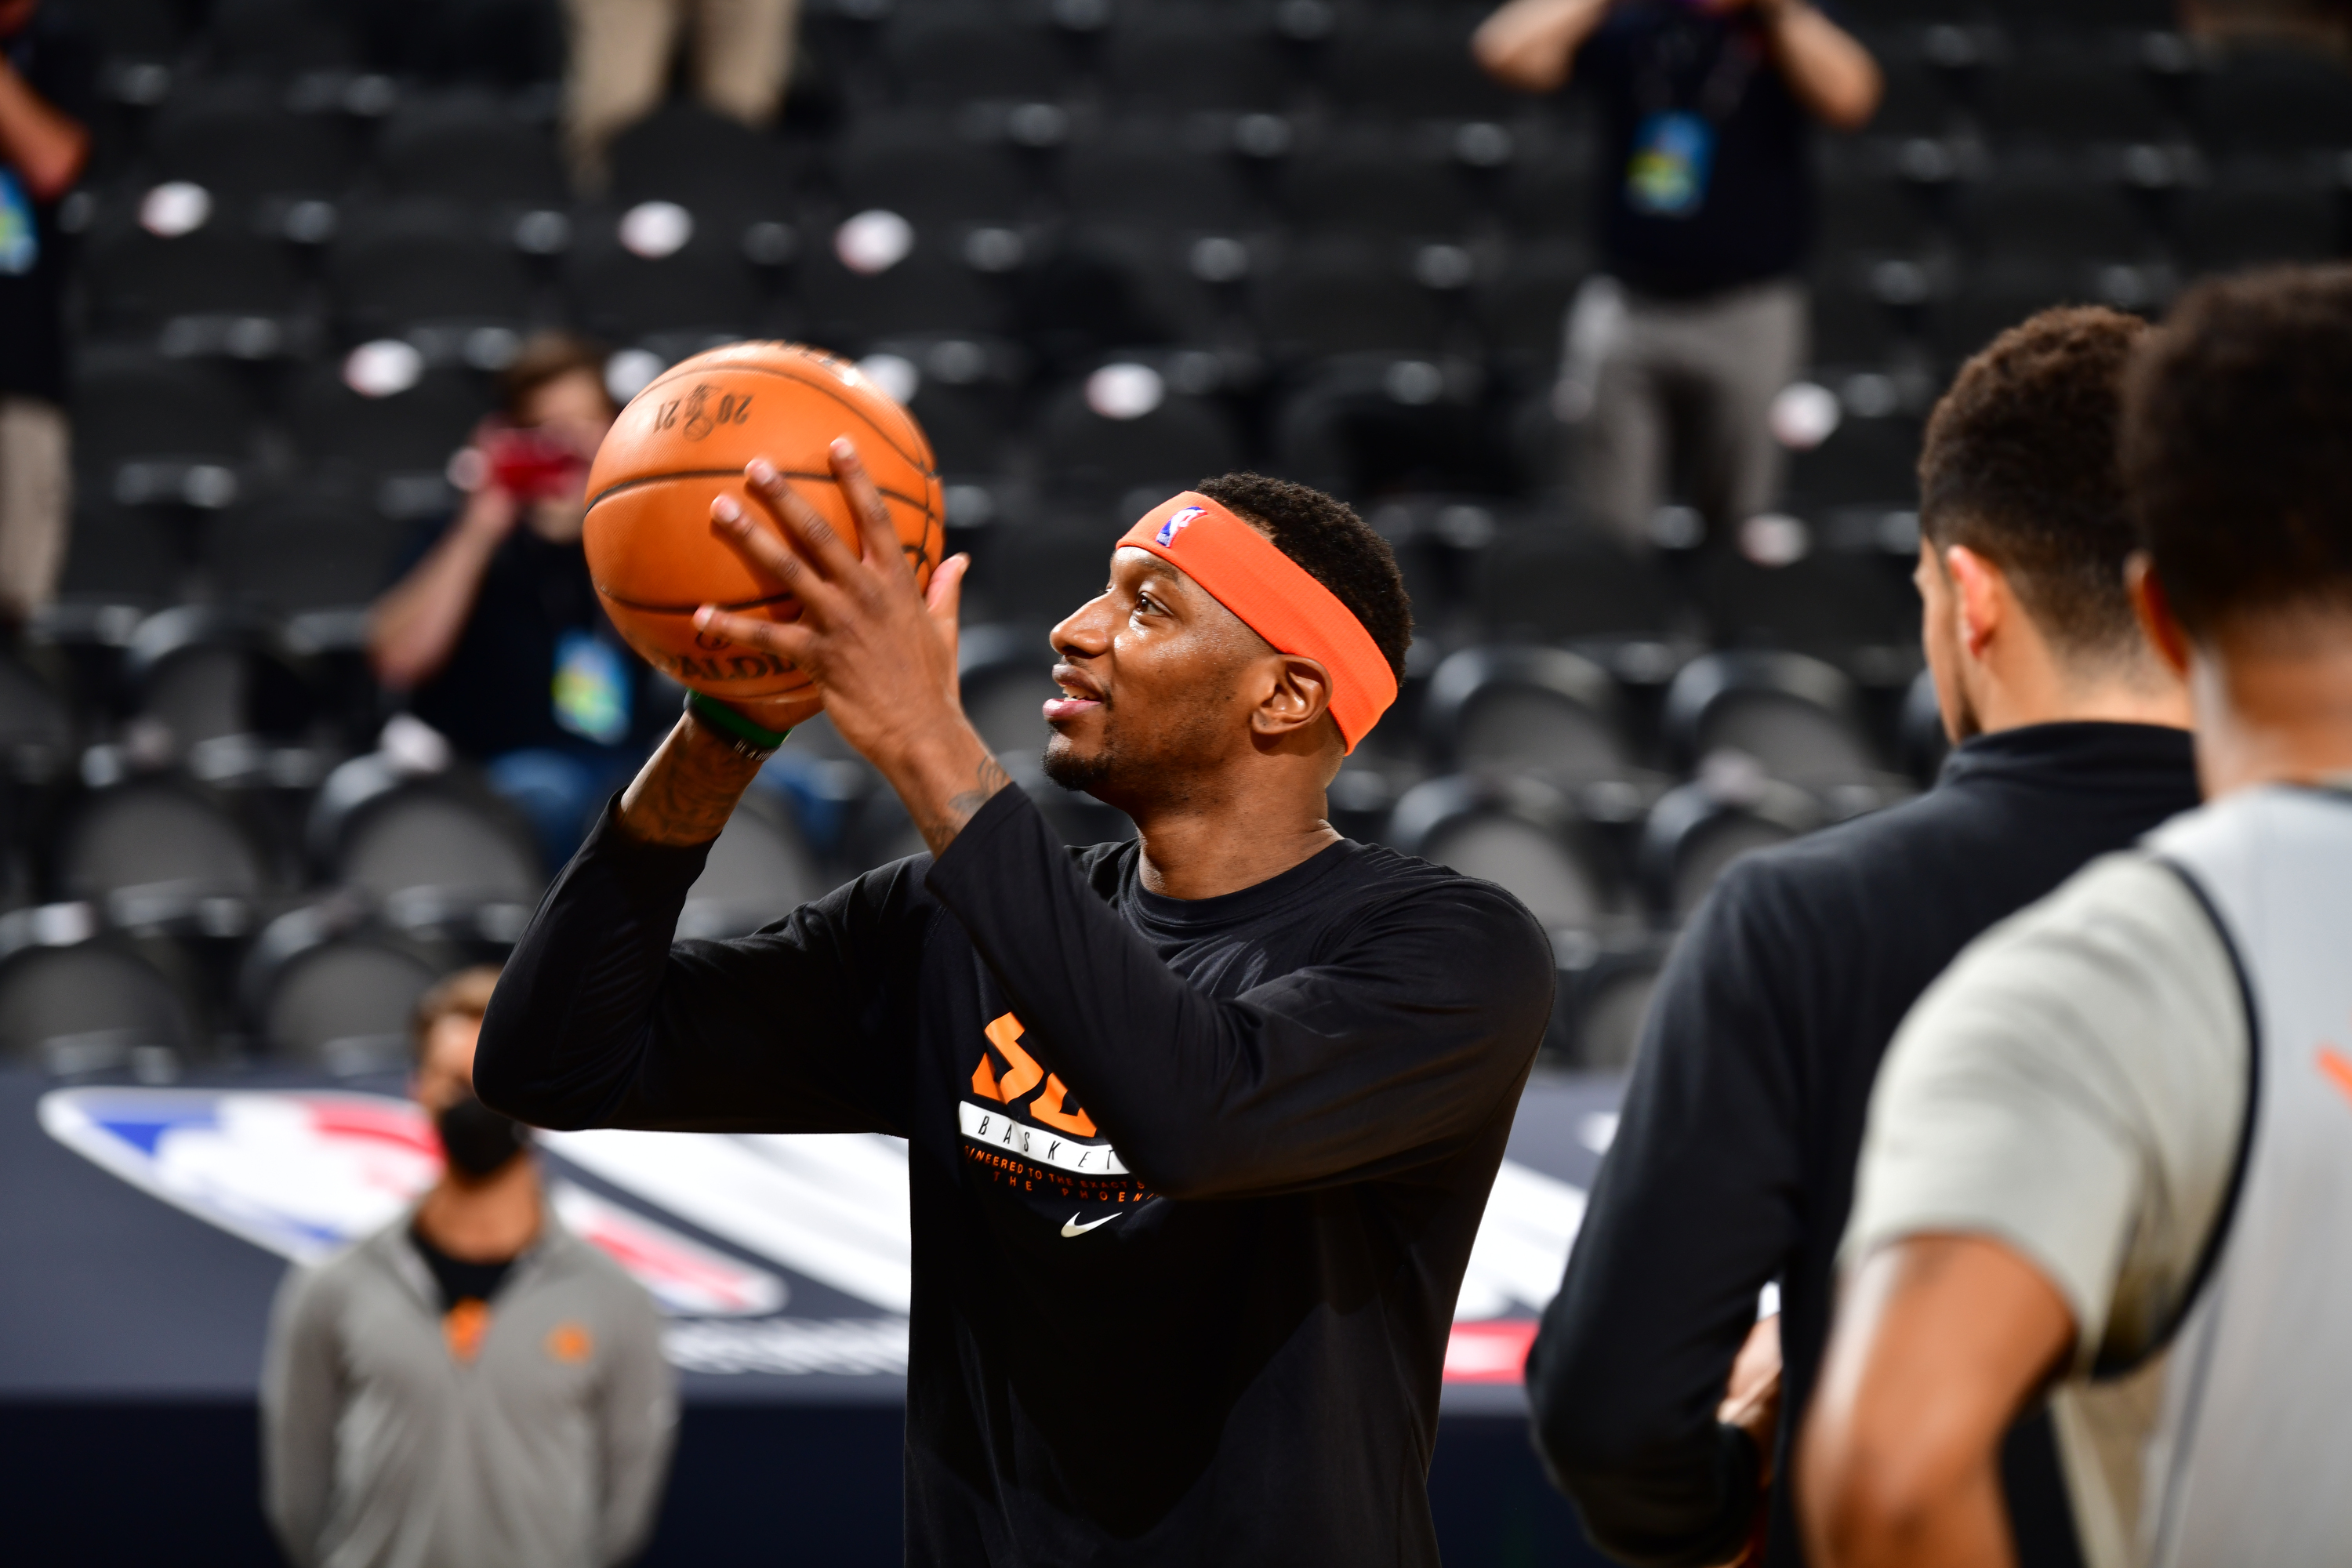 Torrey Craig of the Phoenix Suns during practice and media availability as part of the 2021 NBA Finals on July 5, 2021 at Phoenix Suns Arena in Phoenix, Arizona.